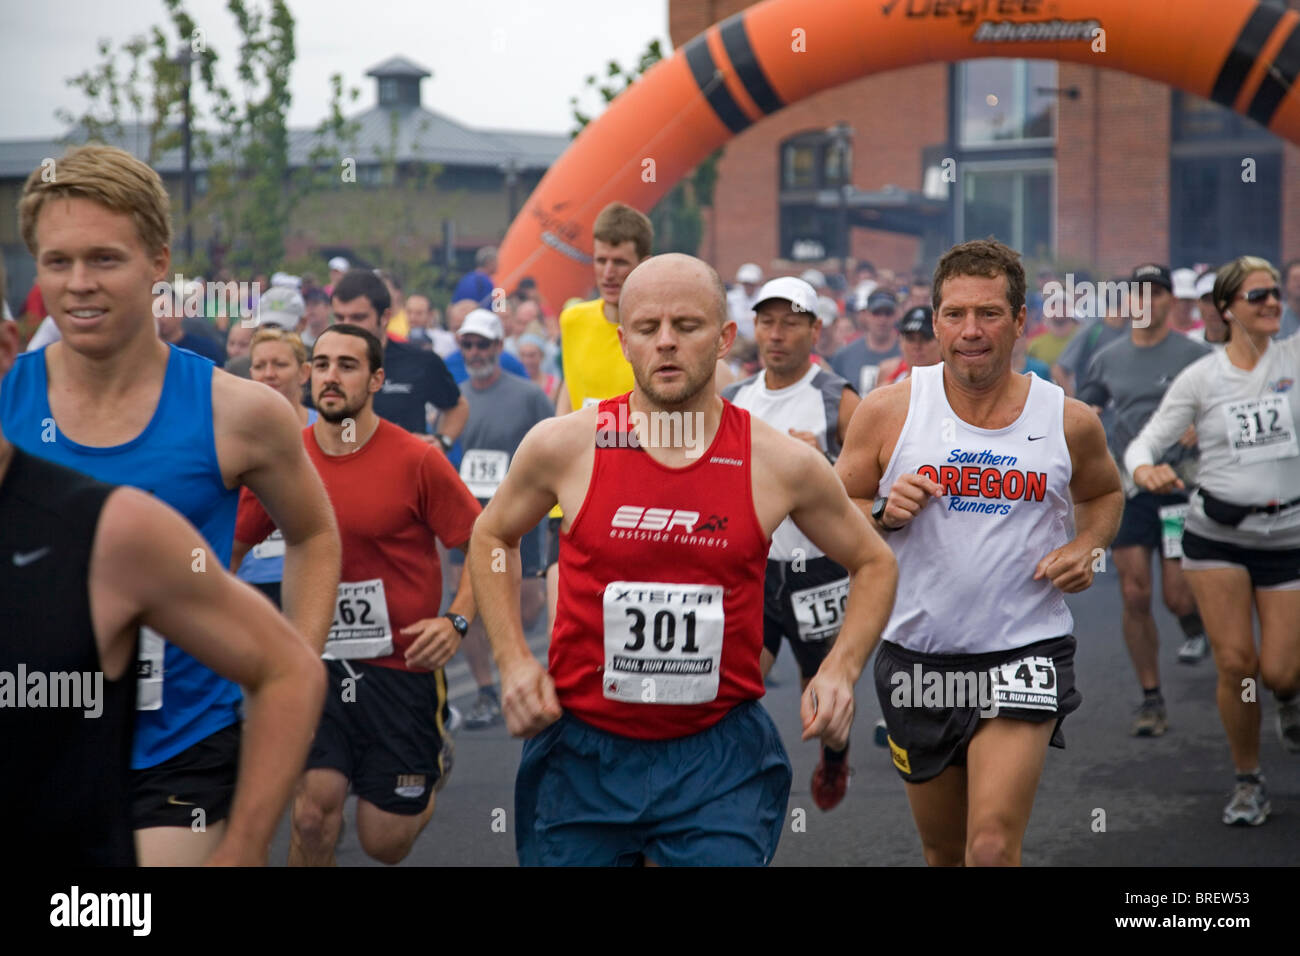 The start of the National finals of the fund raising Exterra Trail Run in Bend, Oregon - Stock Image